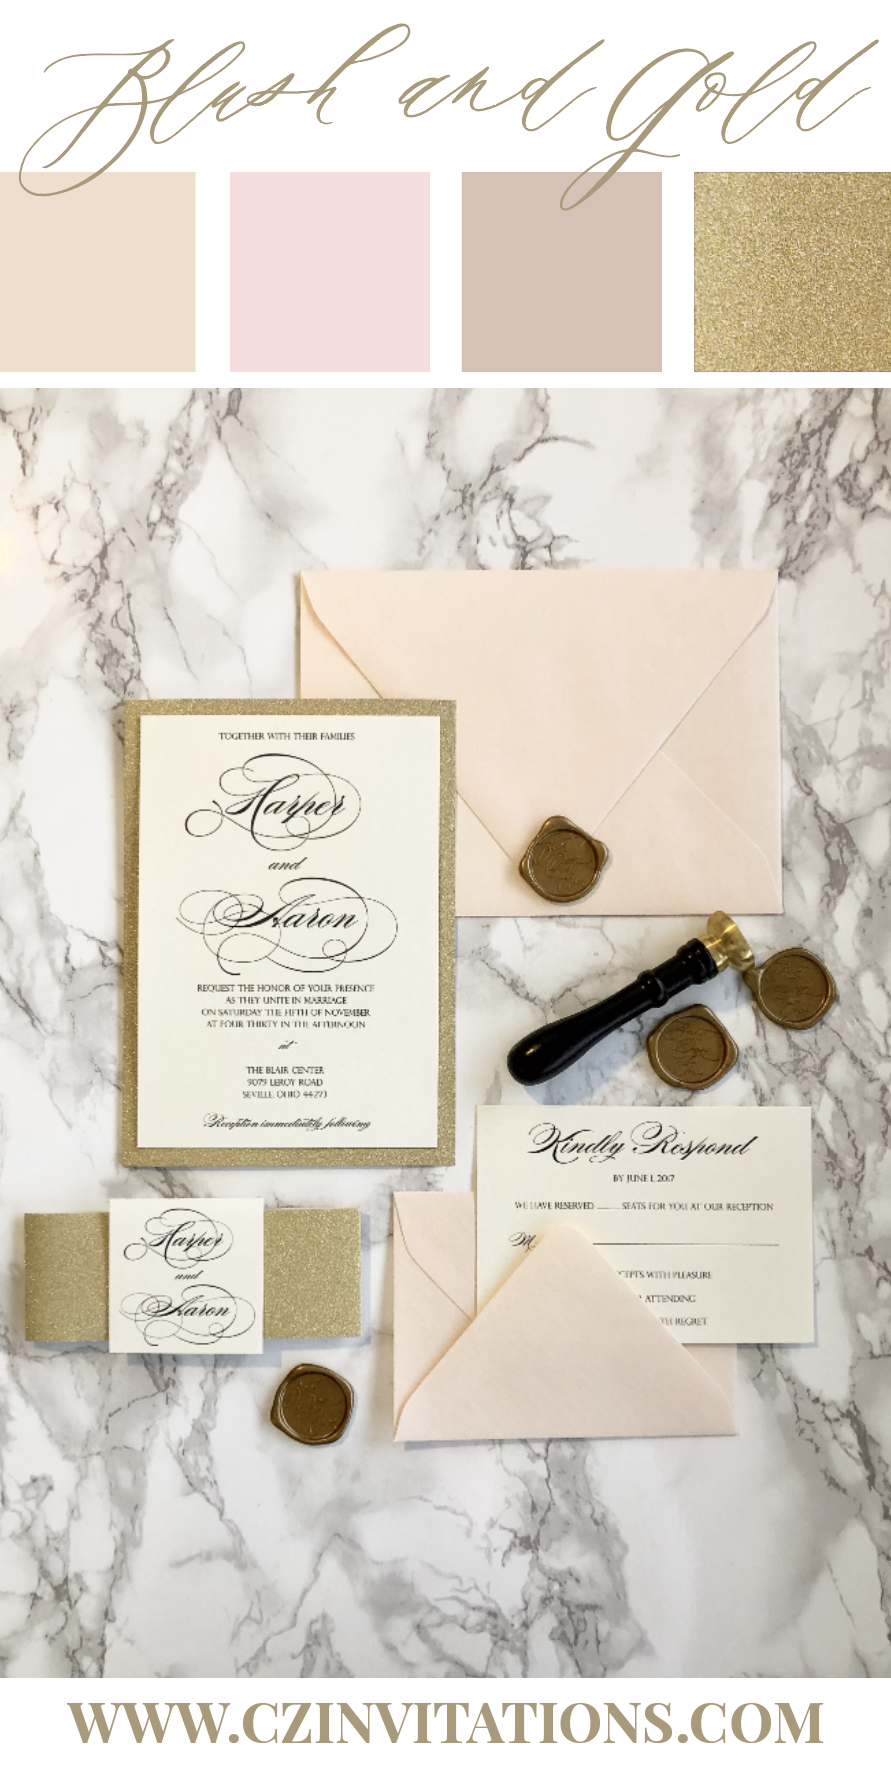 Blush is a classic, versatile shade that can be paired with a variety of colors for the perfect wedding! This set is shown with sparkly Gold Glitter and a unique wax seal for your best day ever!